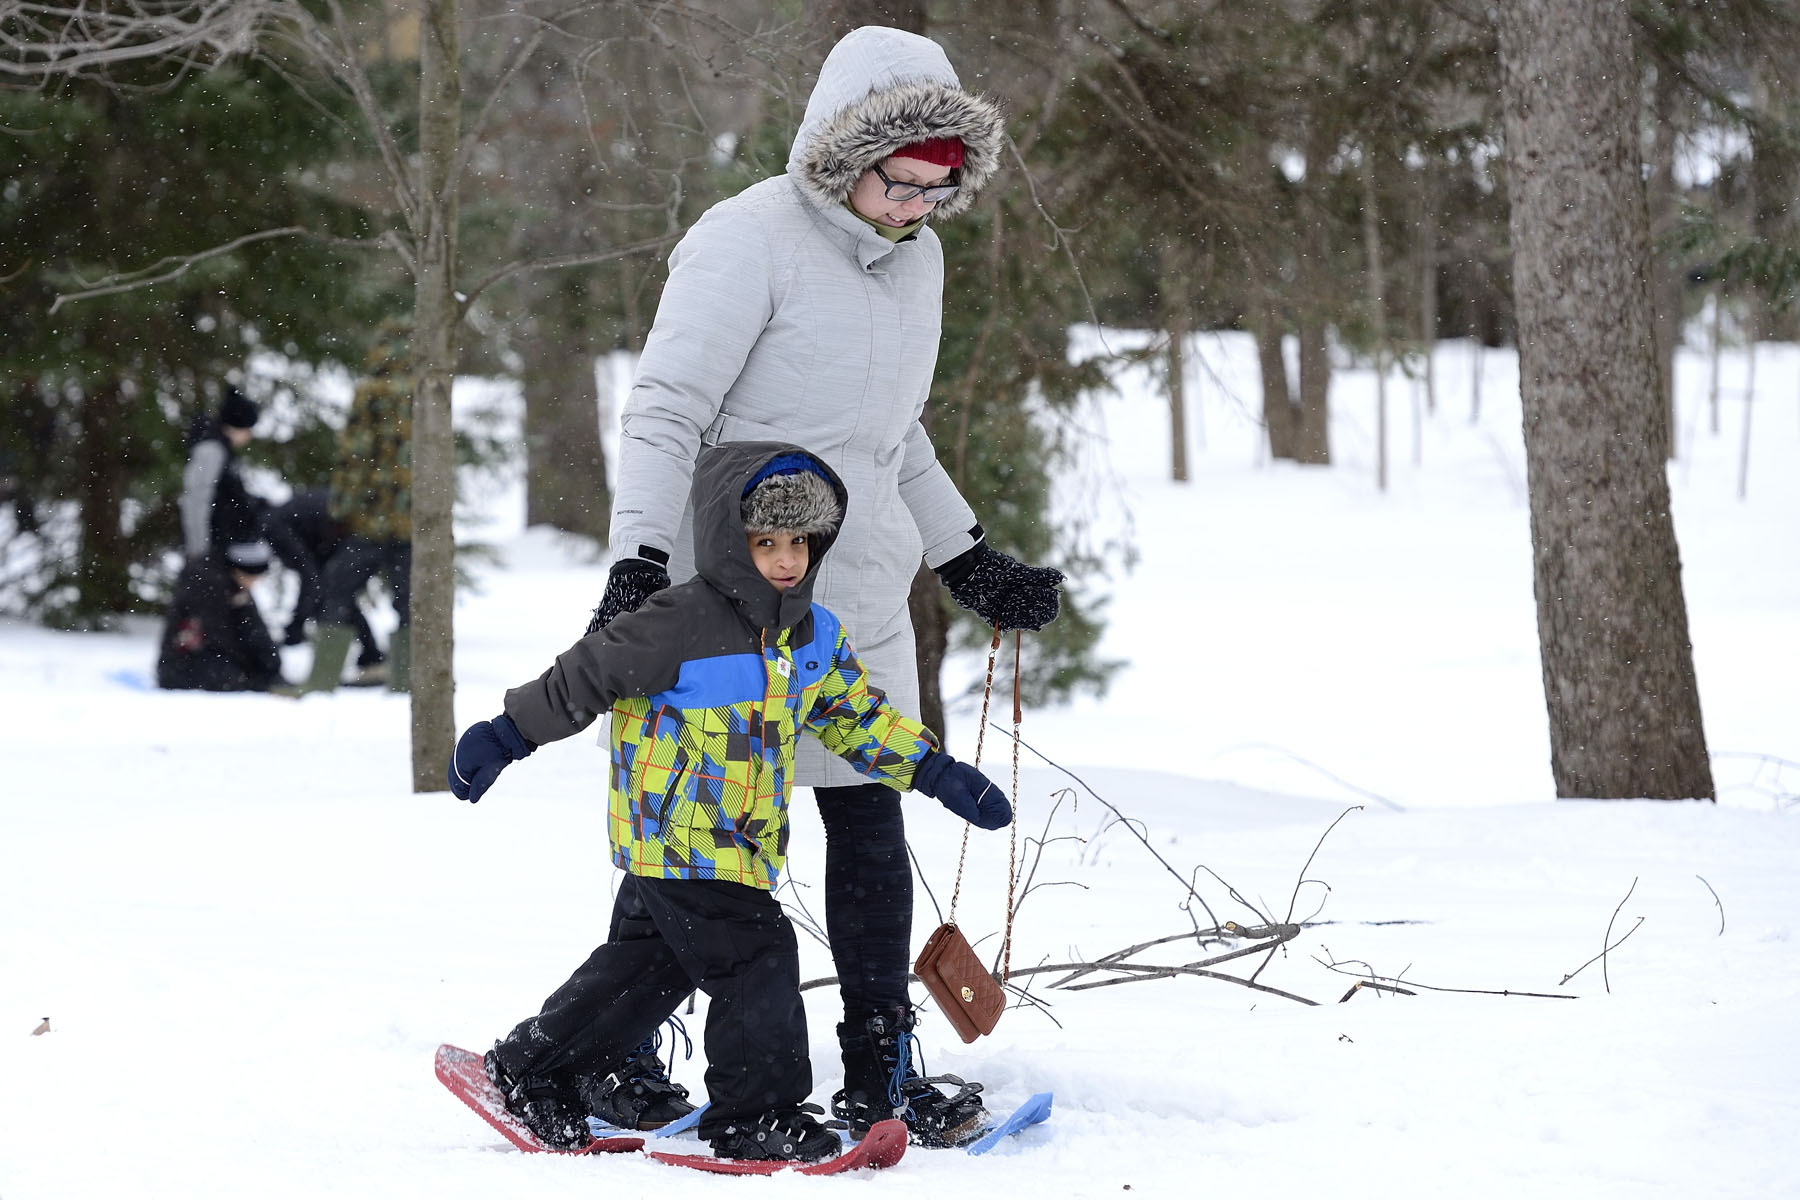 The young and the young-at-heart were invited to enjoy fun winter sports and traditions such as snowshoeing, cross-country skiing and curling on the grounds of the official residence and workplace of the Governor General.